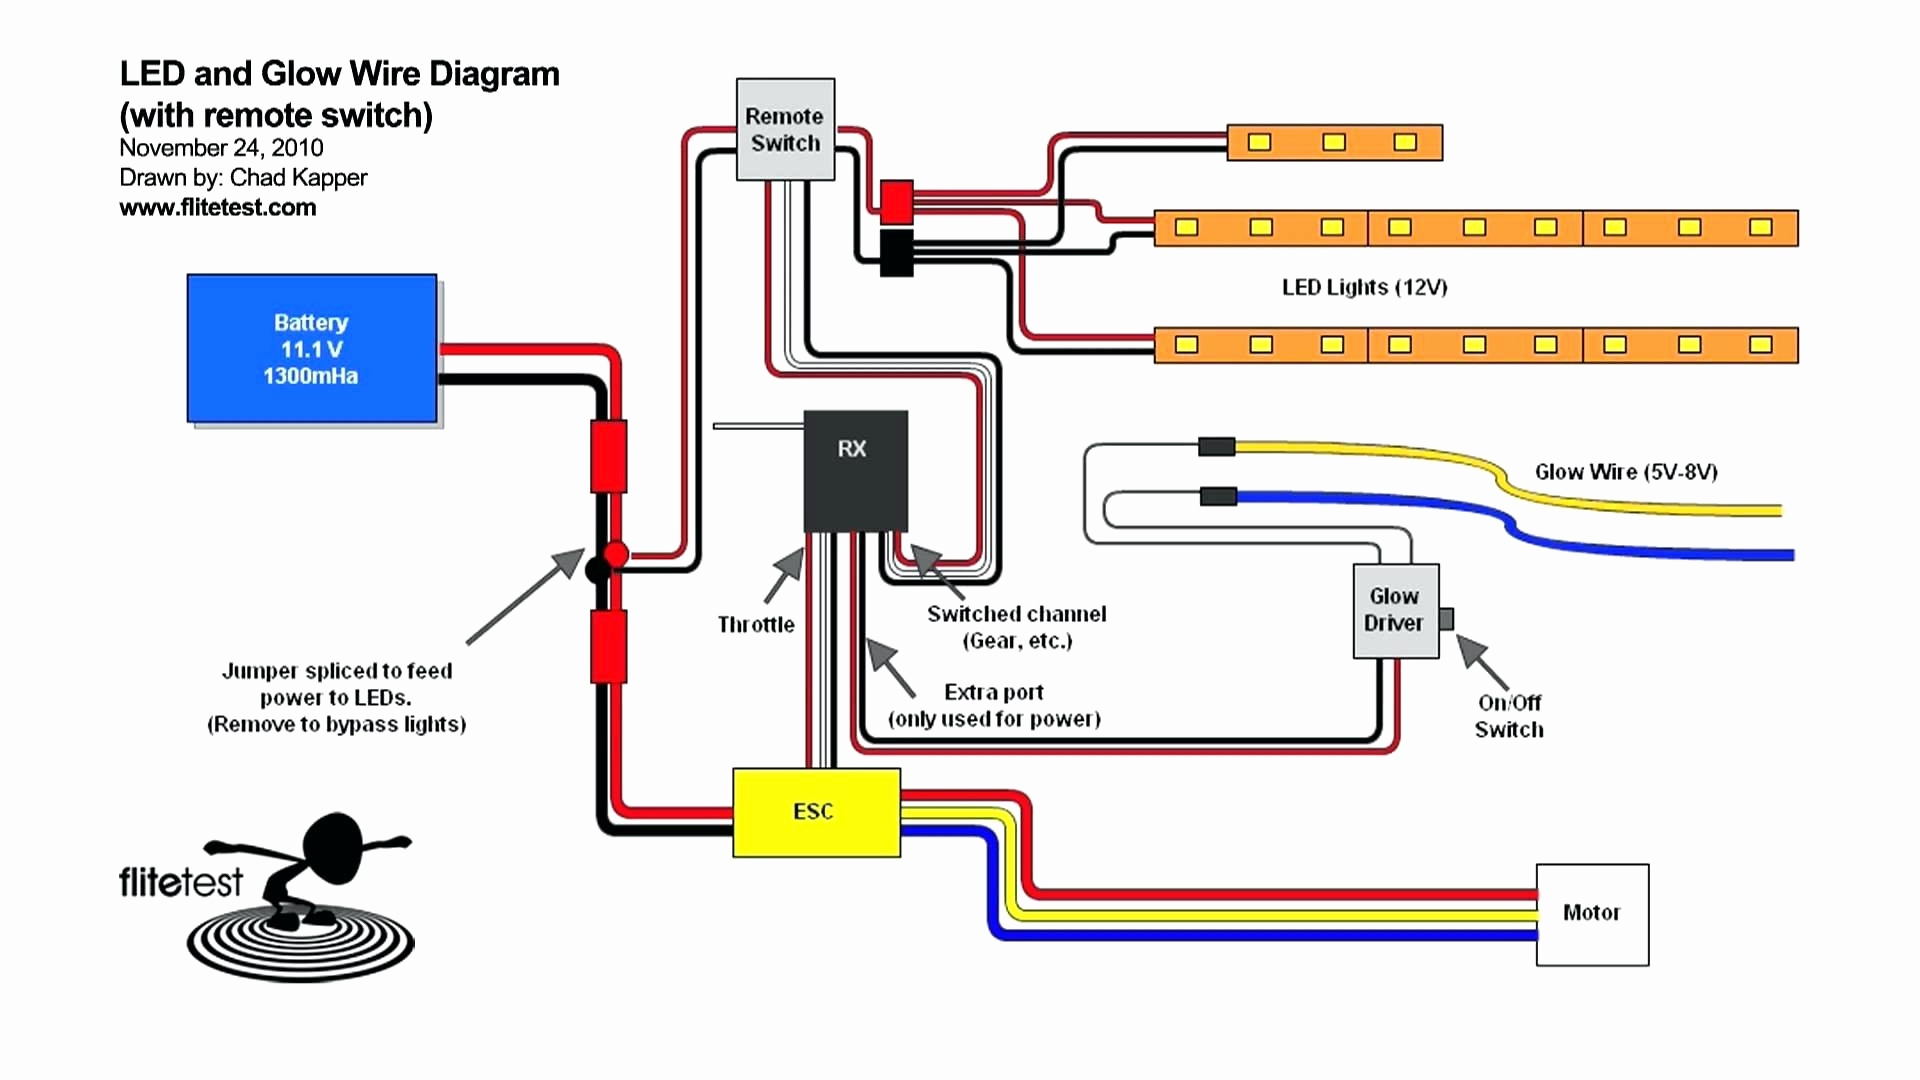 Led Light 12V 3 Wire Wiring Diagram | Wiring Diagram - Led Wiring Diagram For Trailer Lights